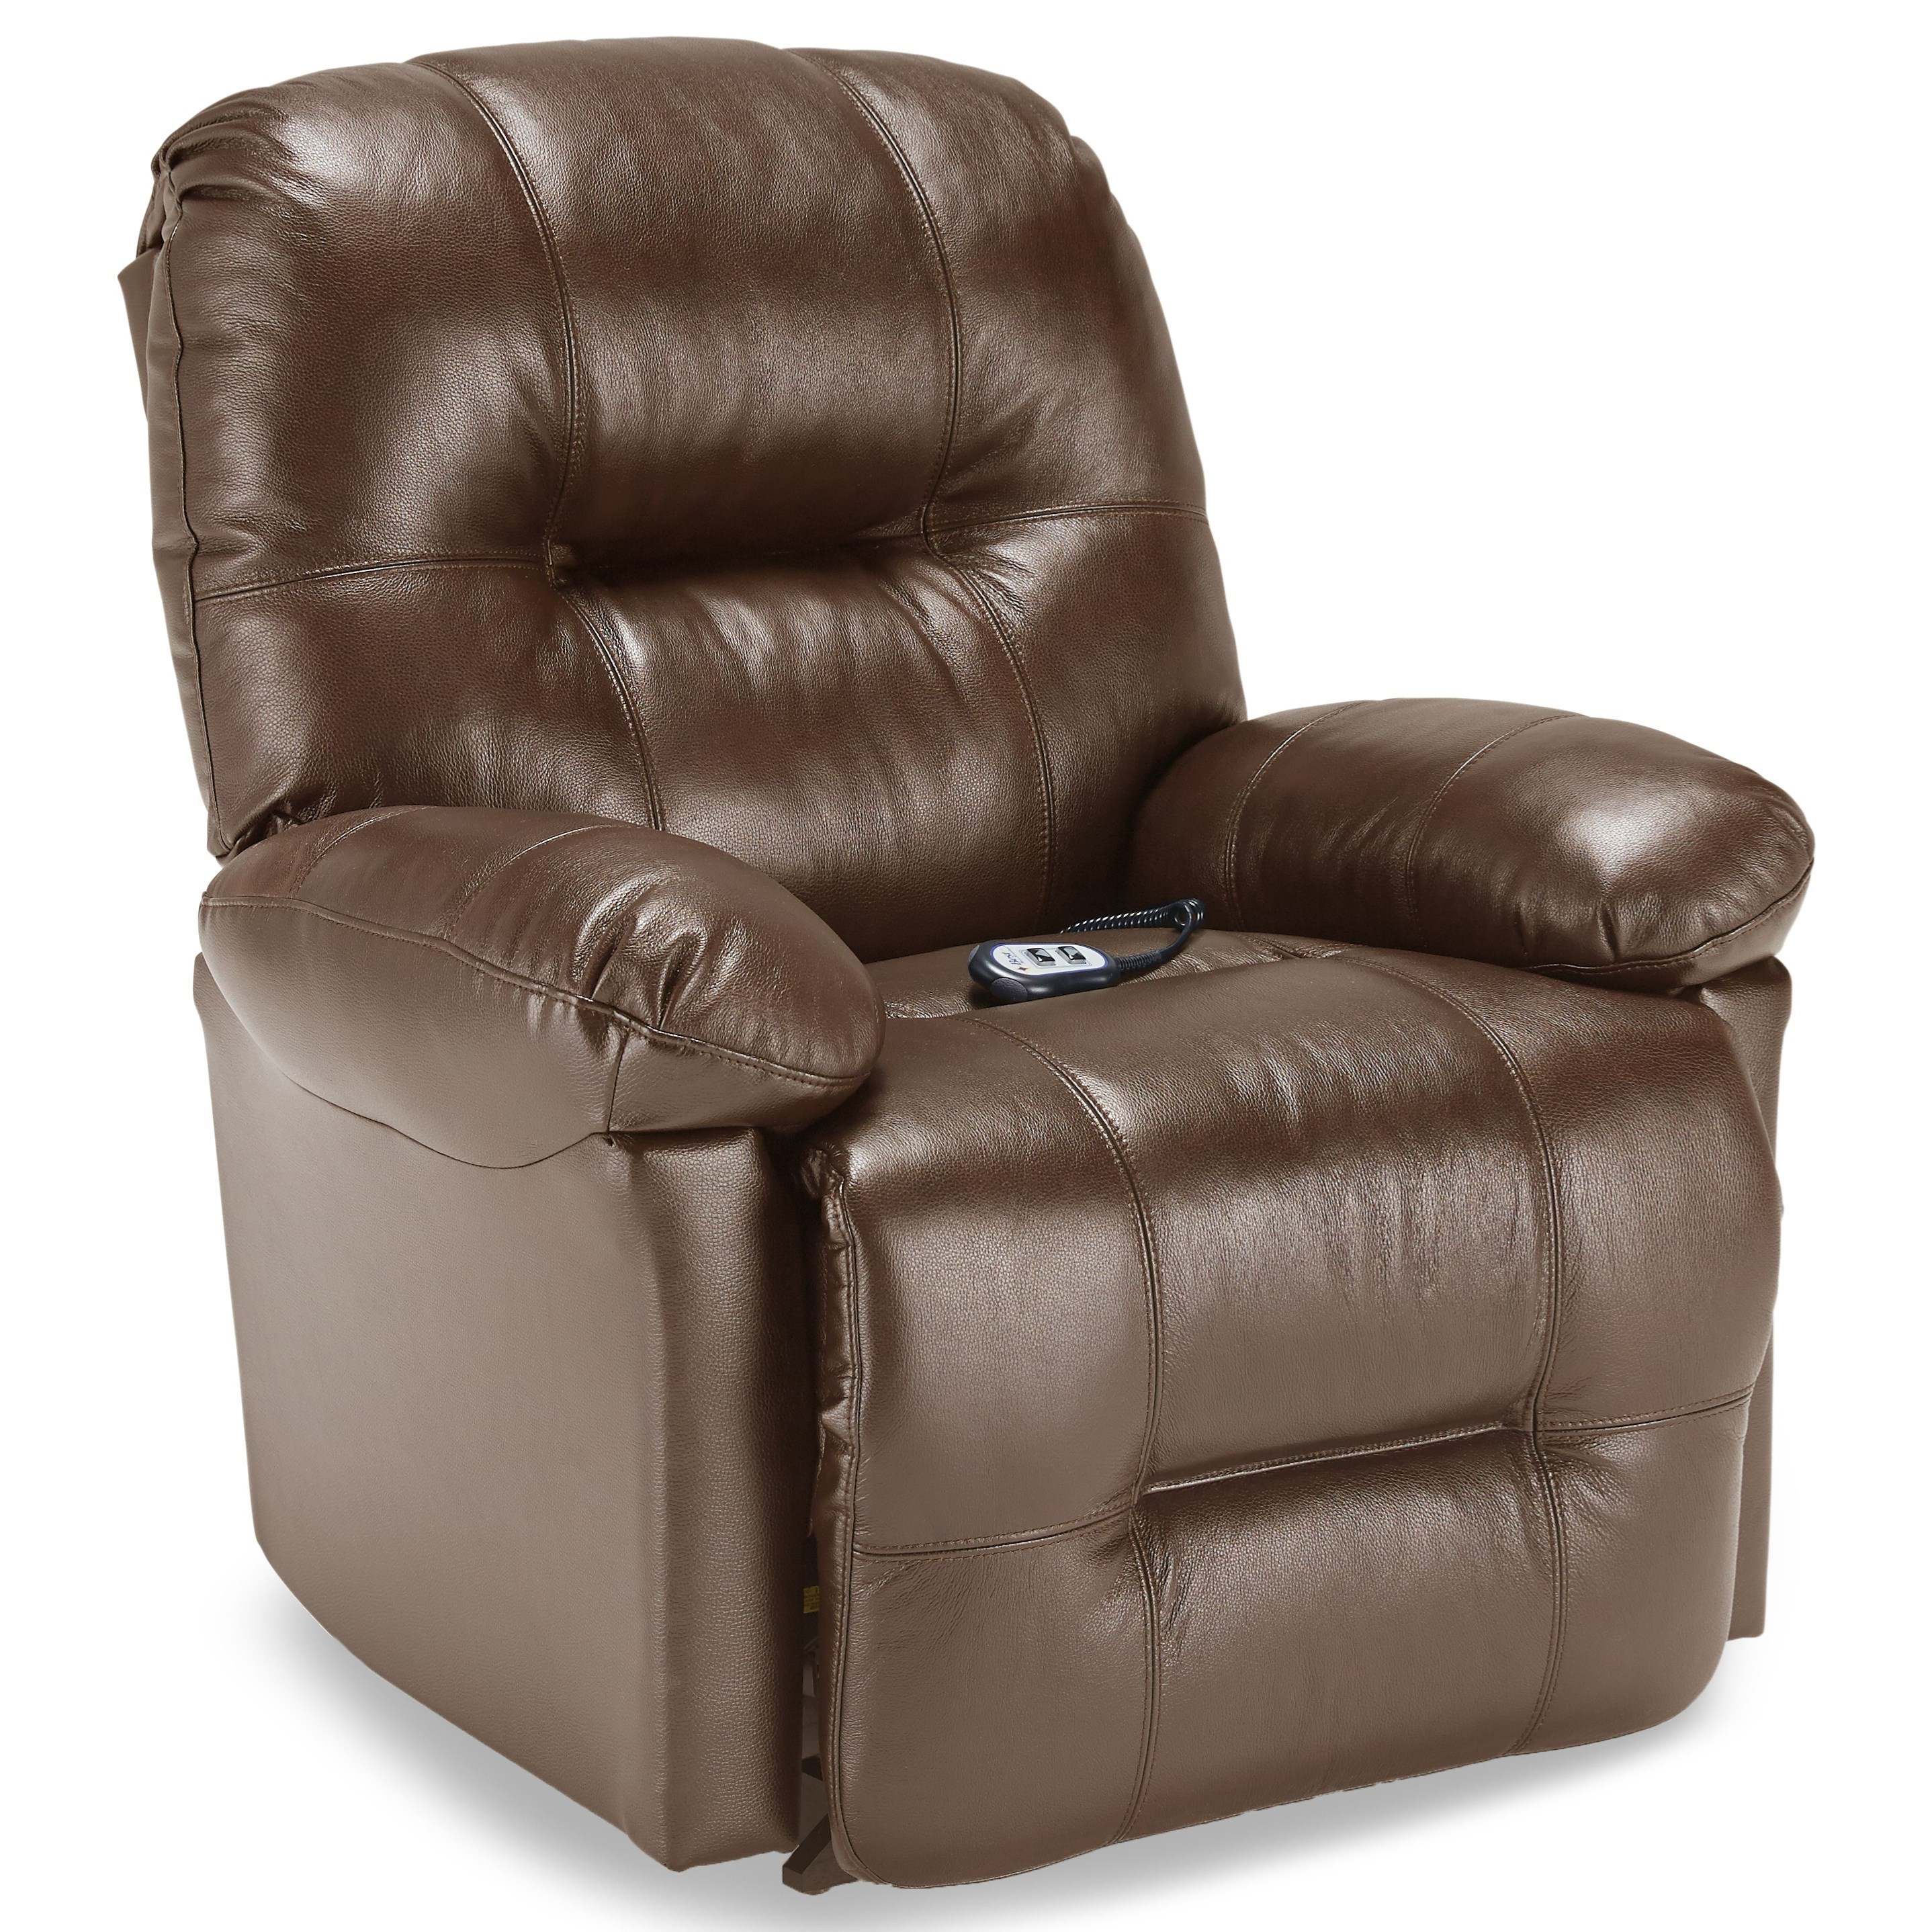 S501 Zaynah Power Wallhugger Recliner by Best Home Furnishings at Prime Brothers Furniture